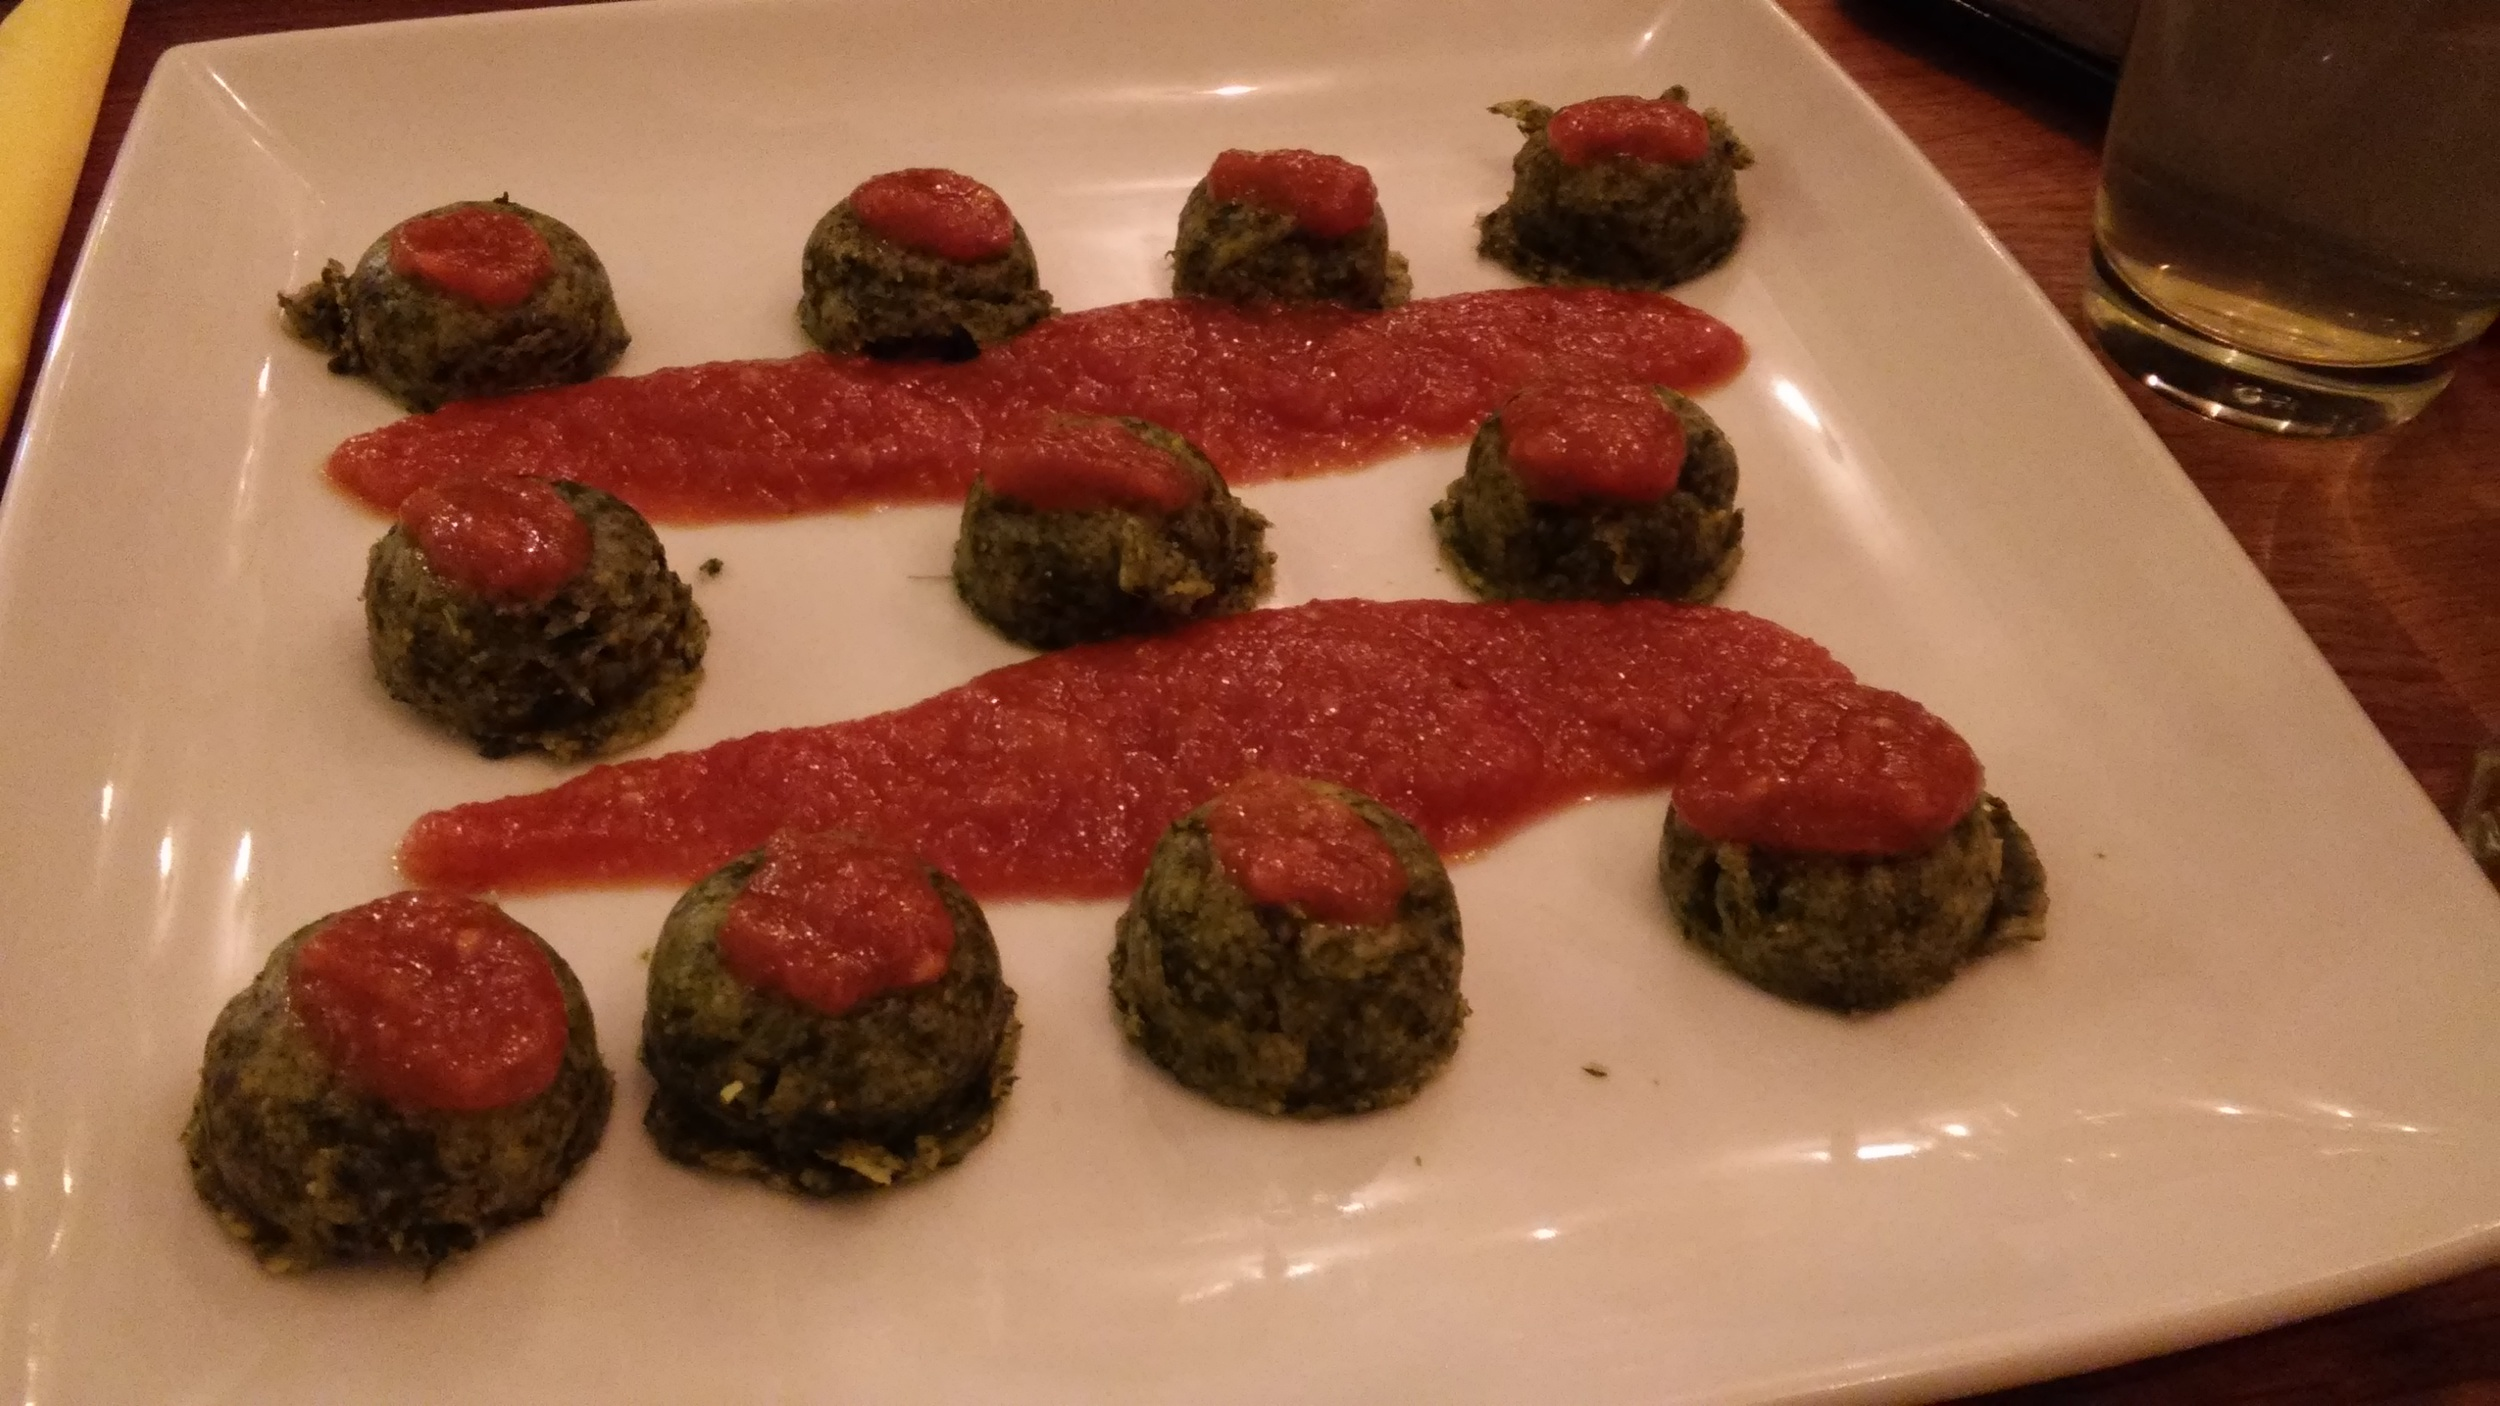 Polenta gnocchi with spinach and tomato sauce